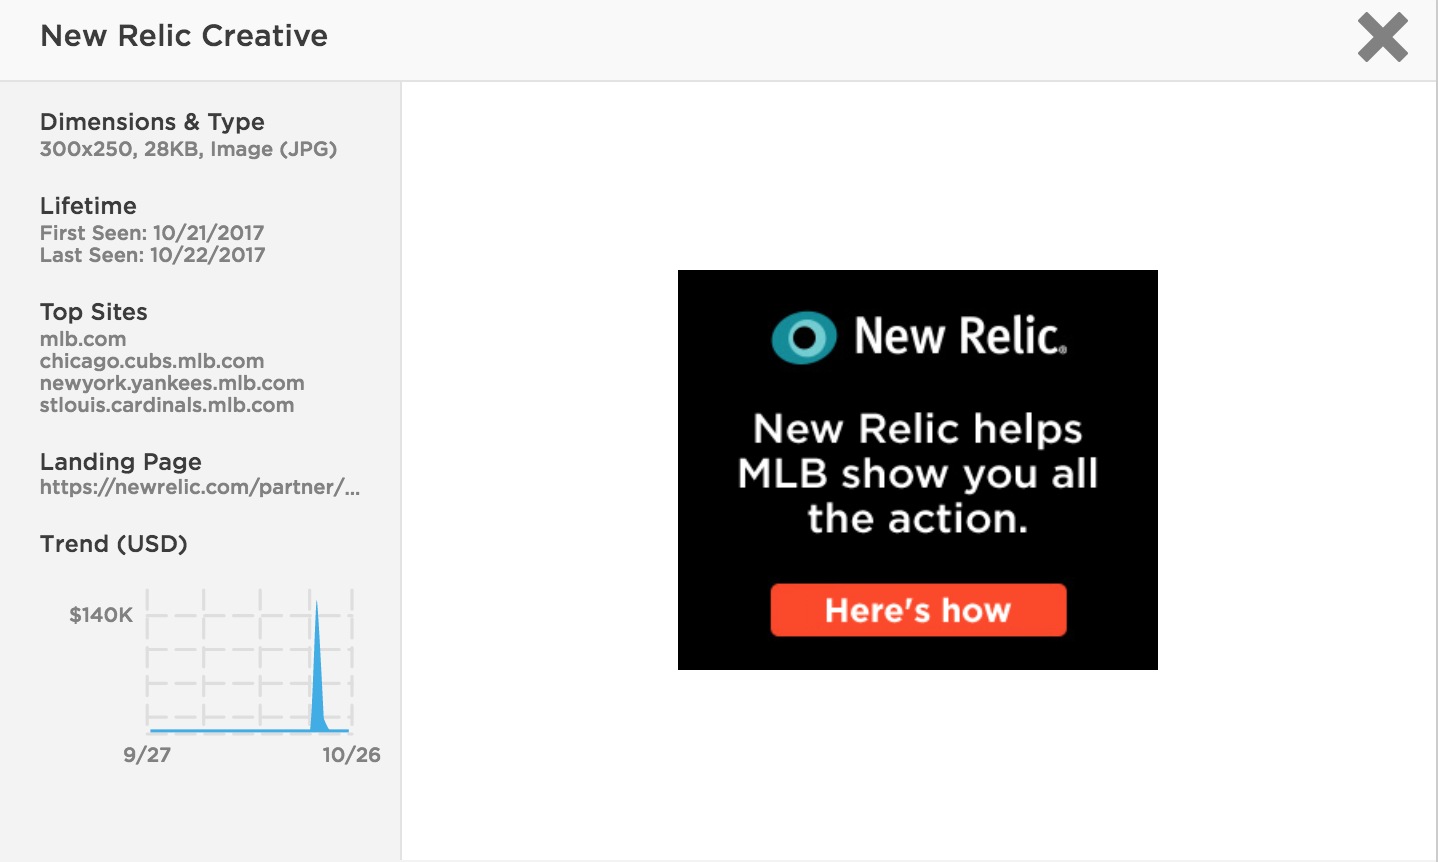 new_relic_creative.png